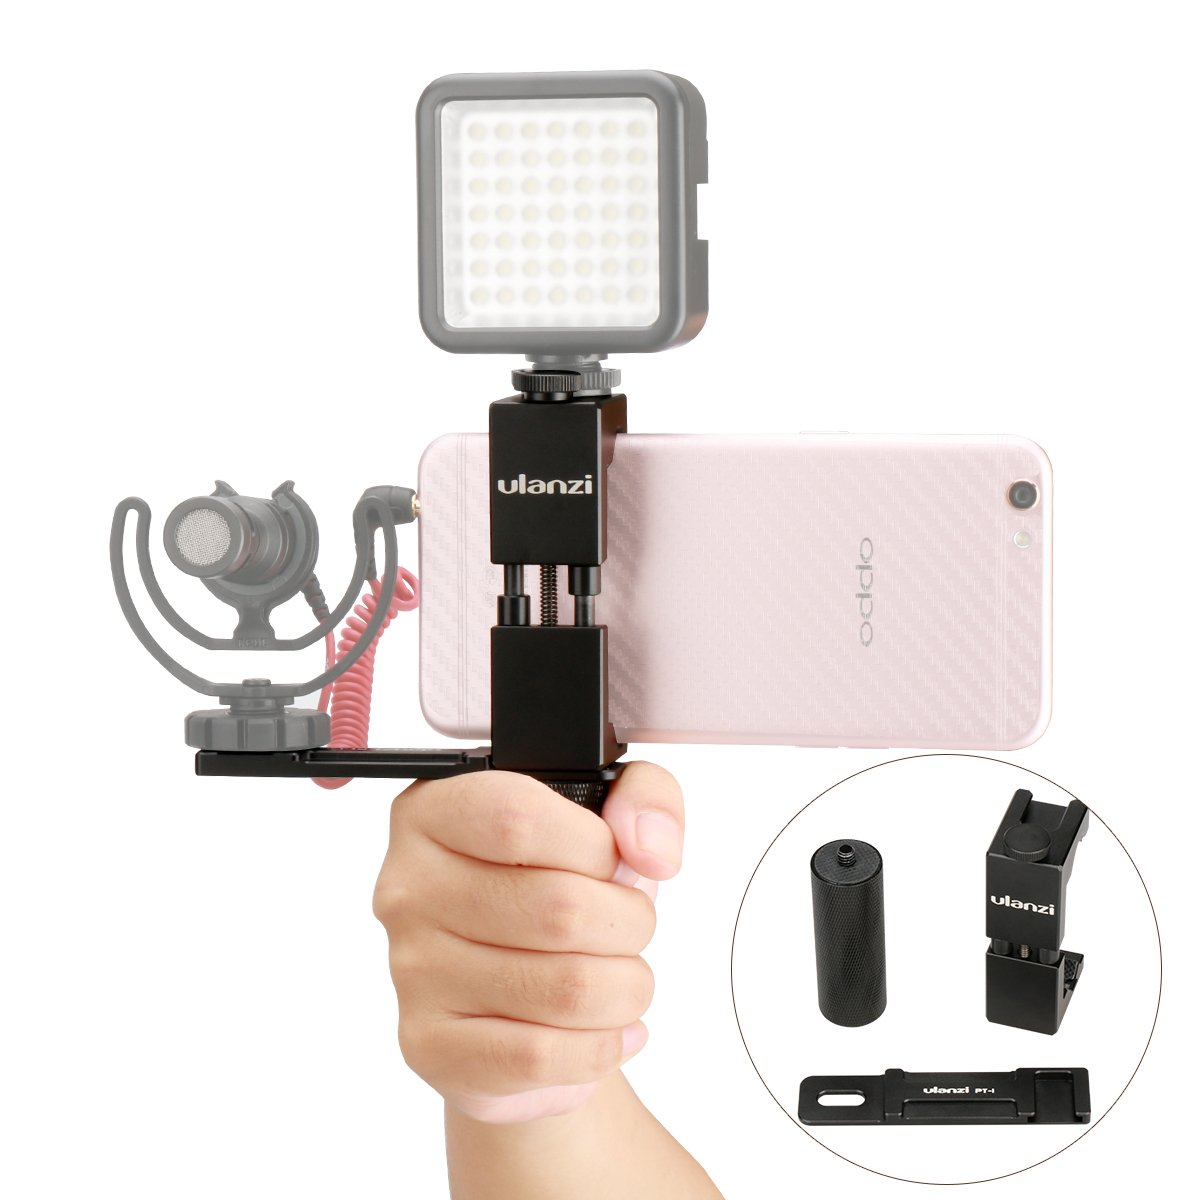 Ulanzi Smartphone Filmmaker Video Rig, Metal Phone Tripod Mount with Hot shoe + Metal Hand Grip Holder + Microphone Cold Shoe Plate Kit for iPhone Microphone BY-MM1 LED Video Light